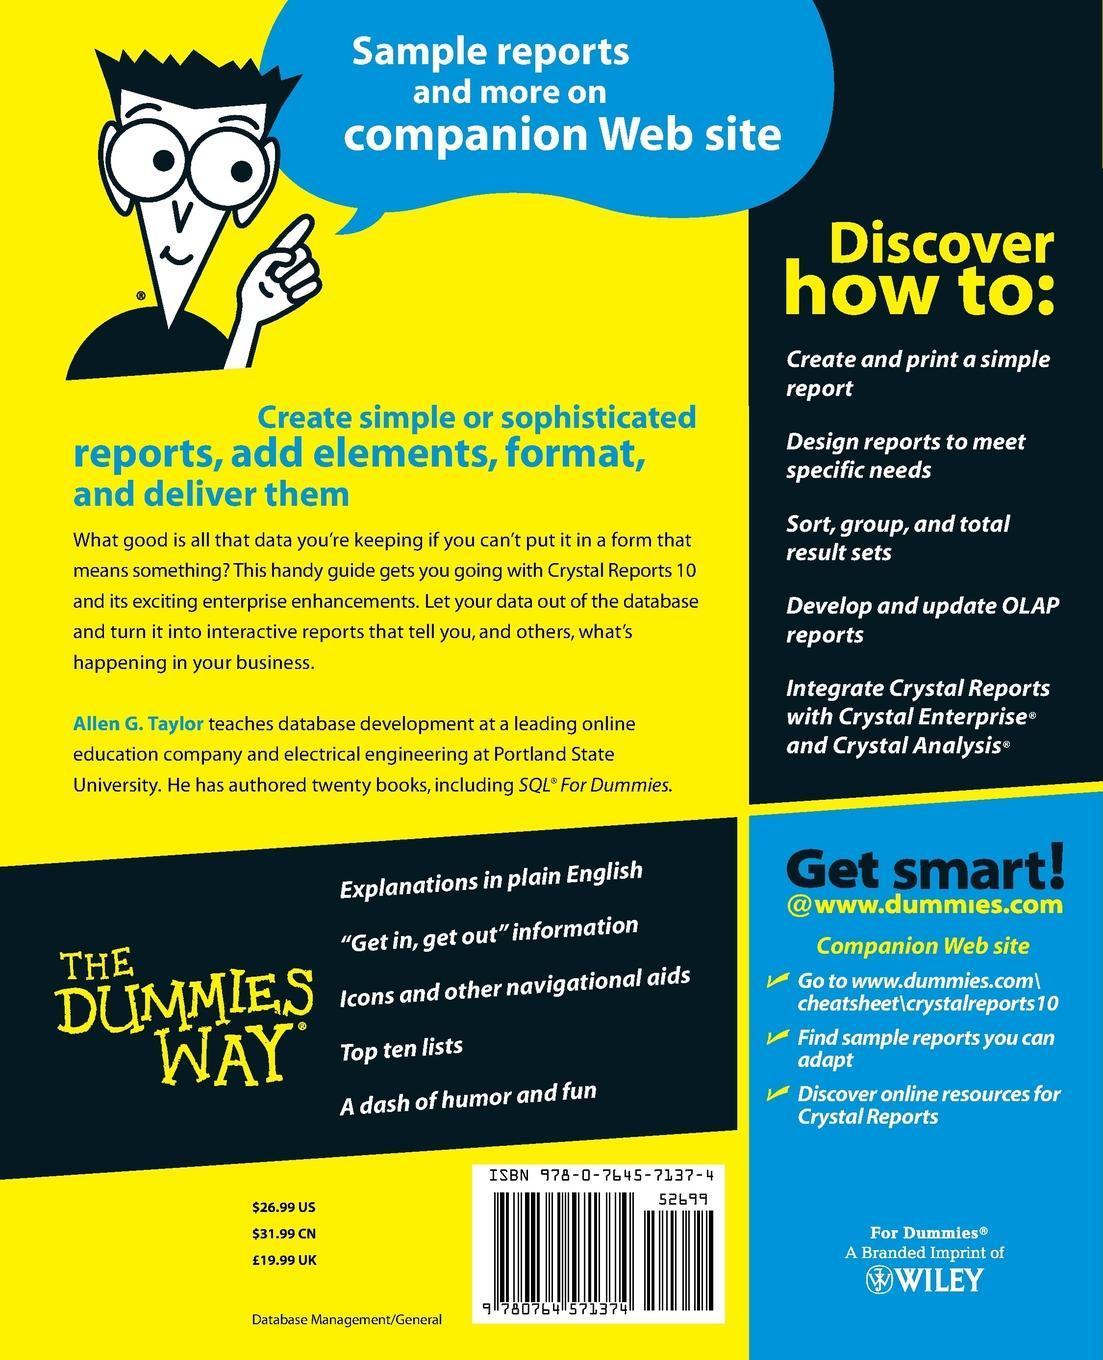 Allen G. Taylor Crystal Reports 10 for Dummies